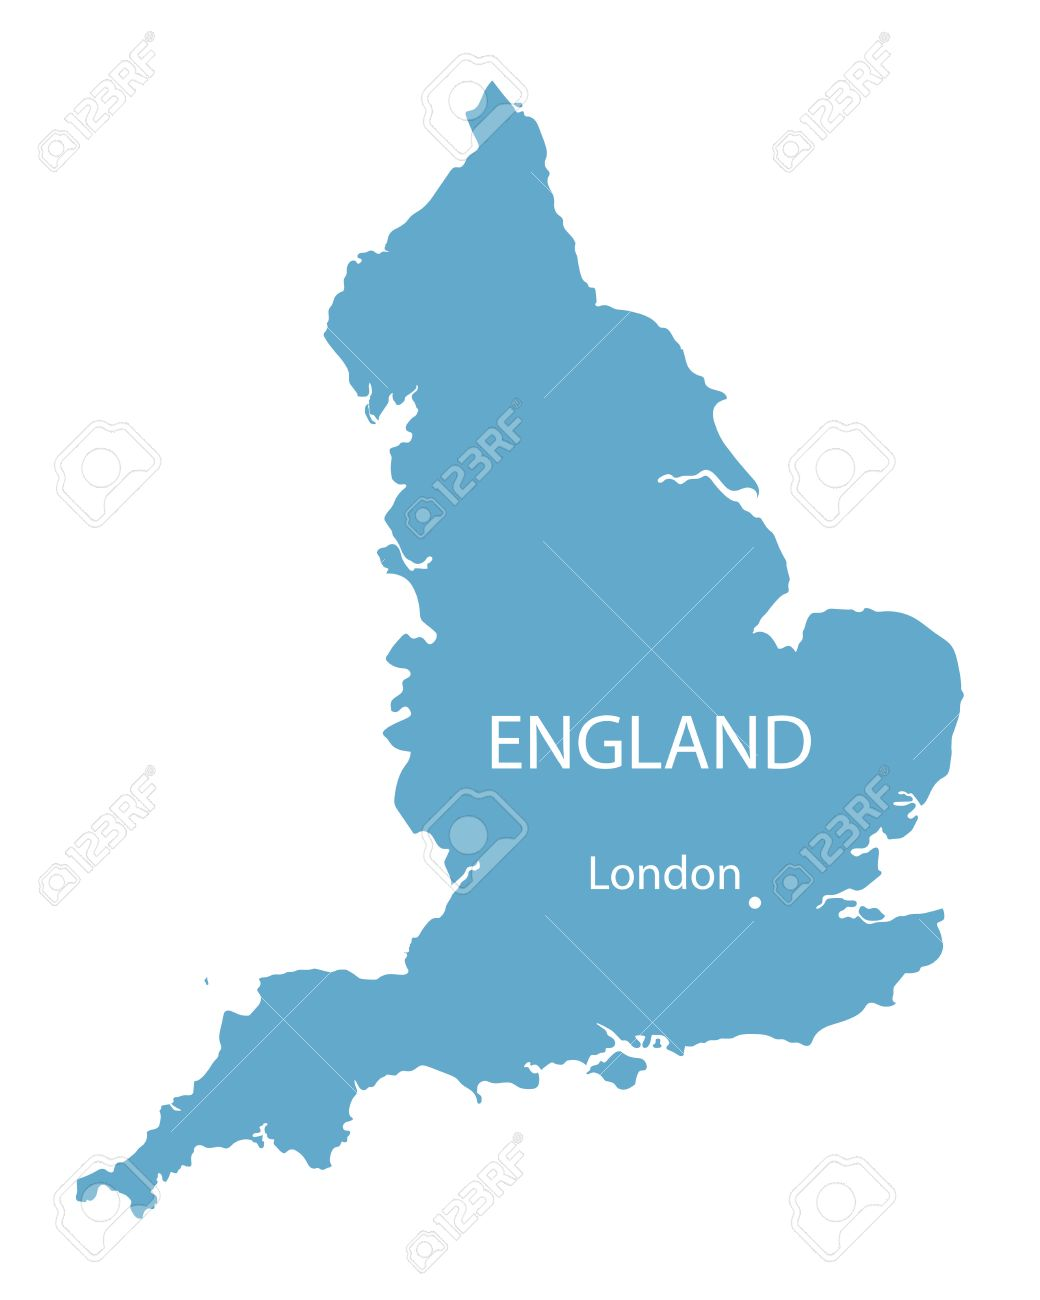 London On The Map Of England.Blue Vector Map Of England With Indication Of London